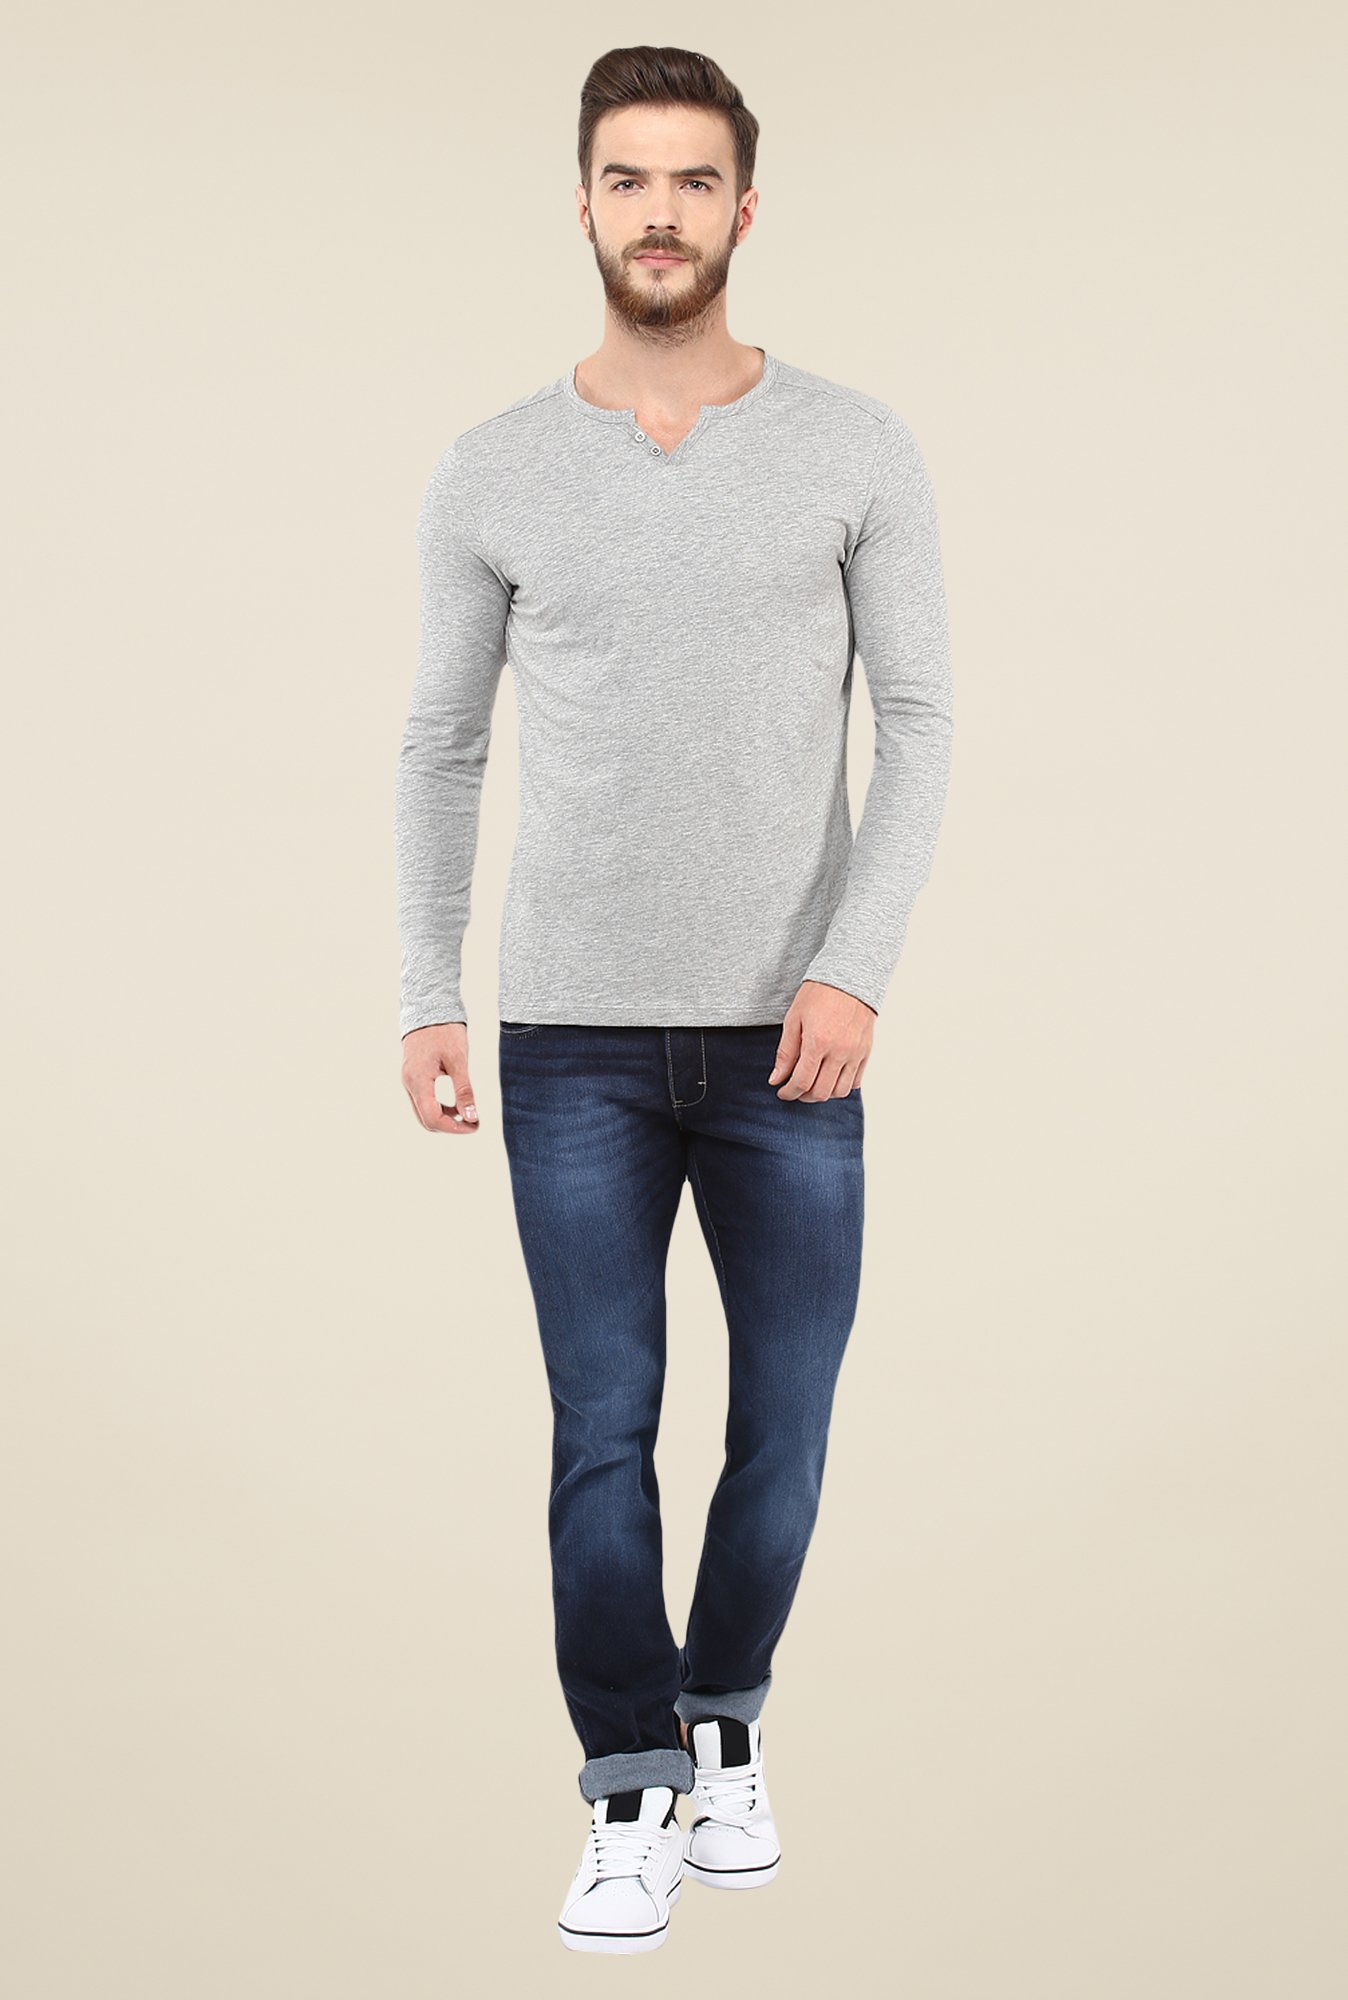 celio* Grey Textured T Shirt